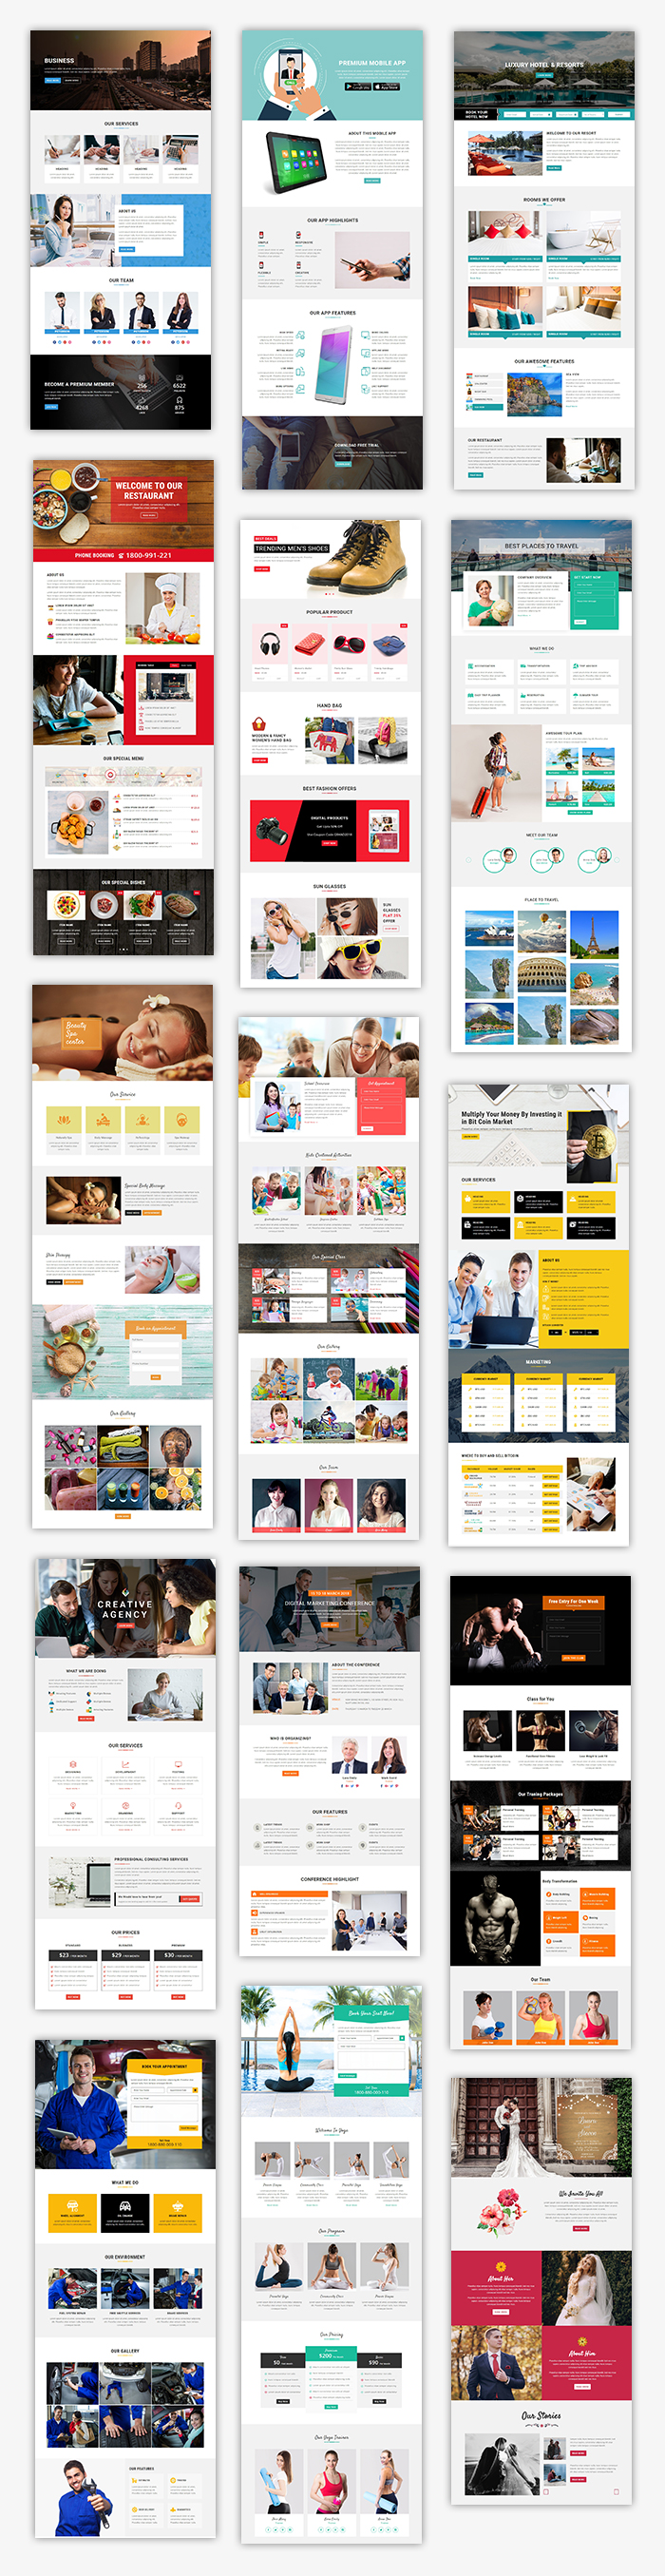 Grand - Lead Generating HTML Landing Pages - 2